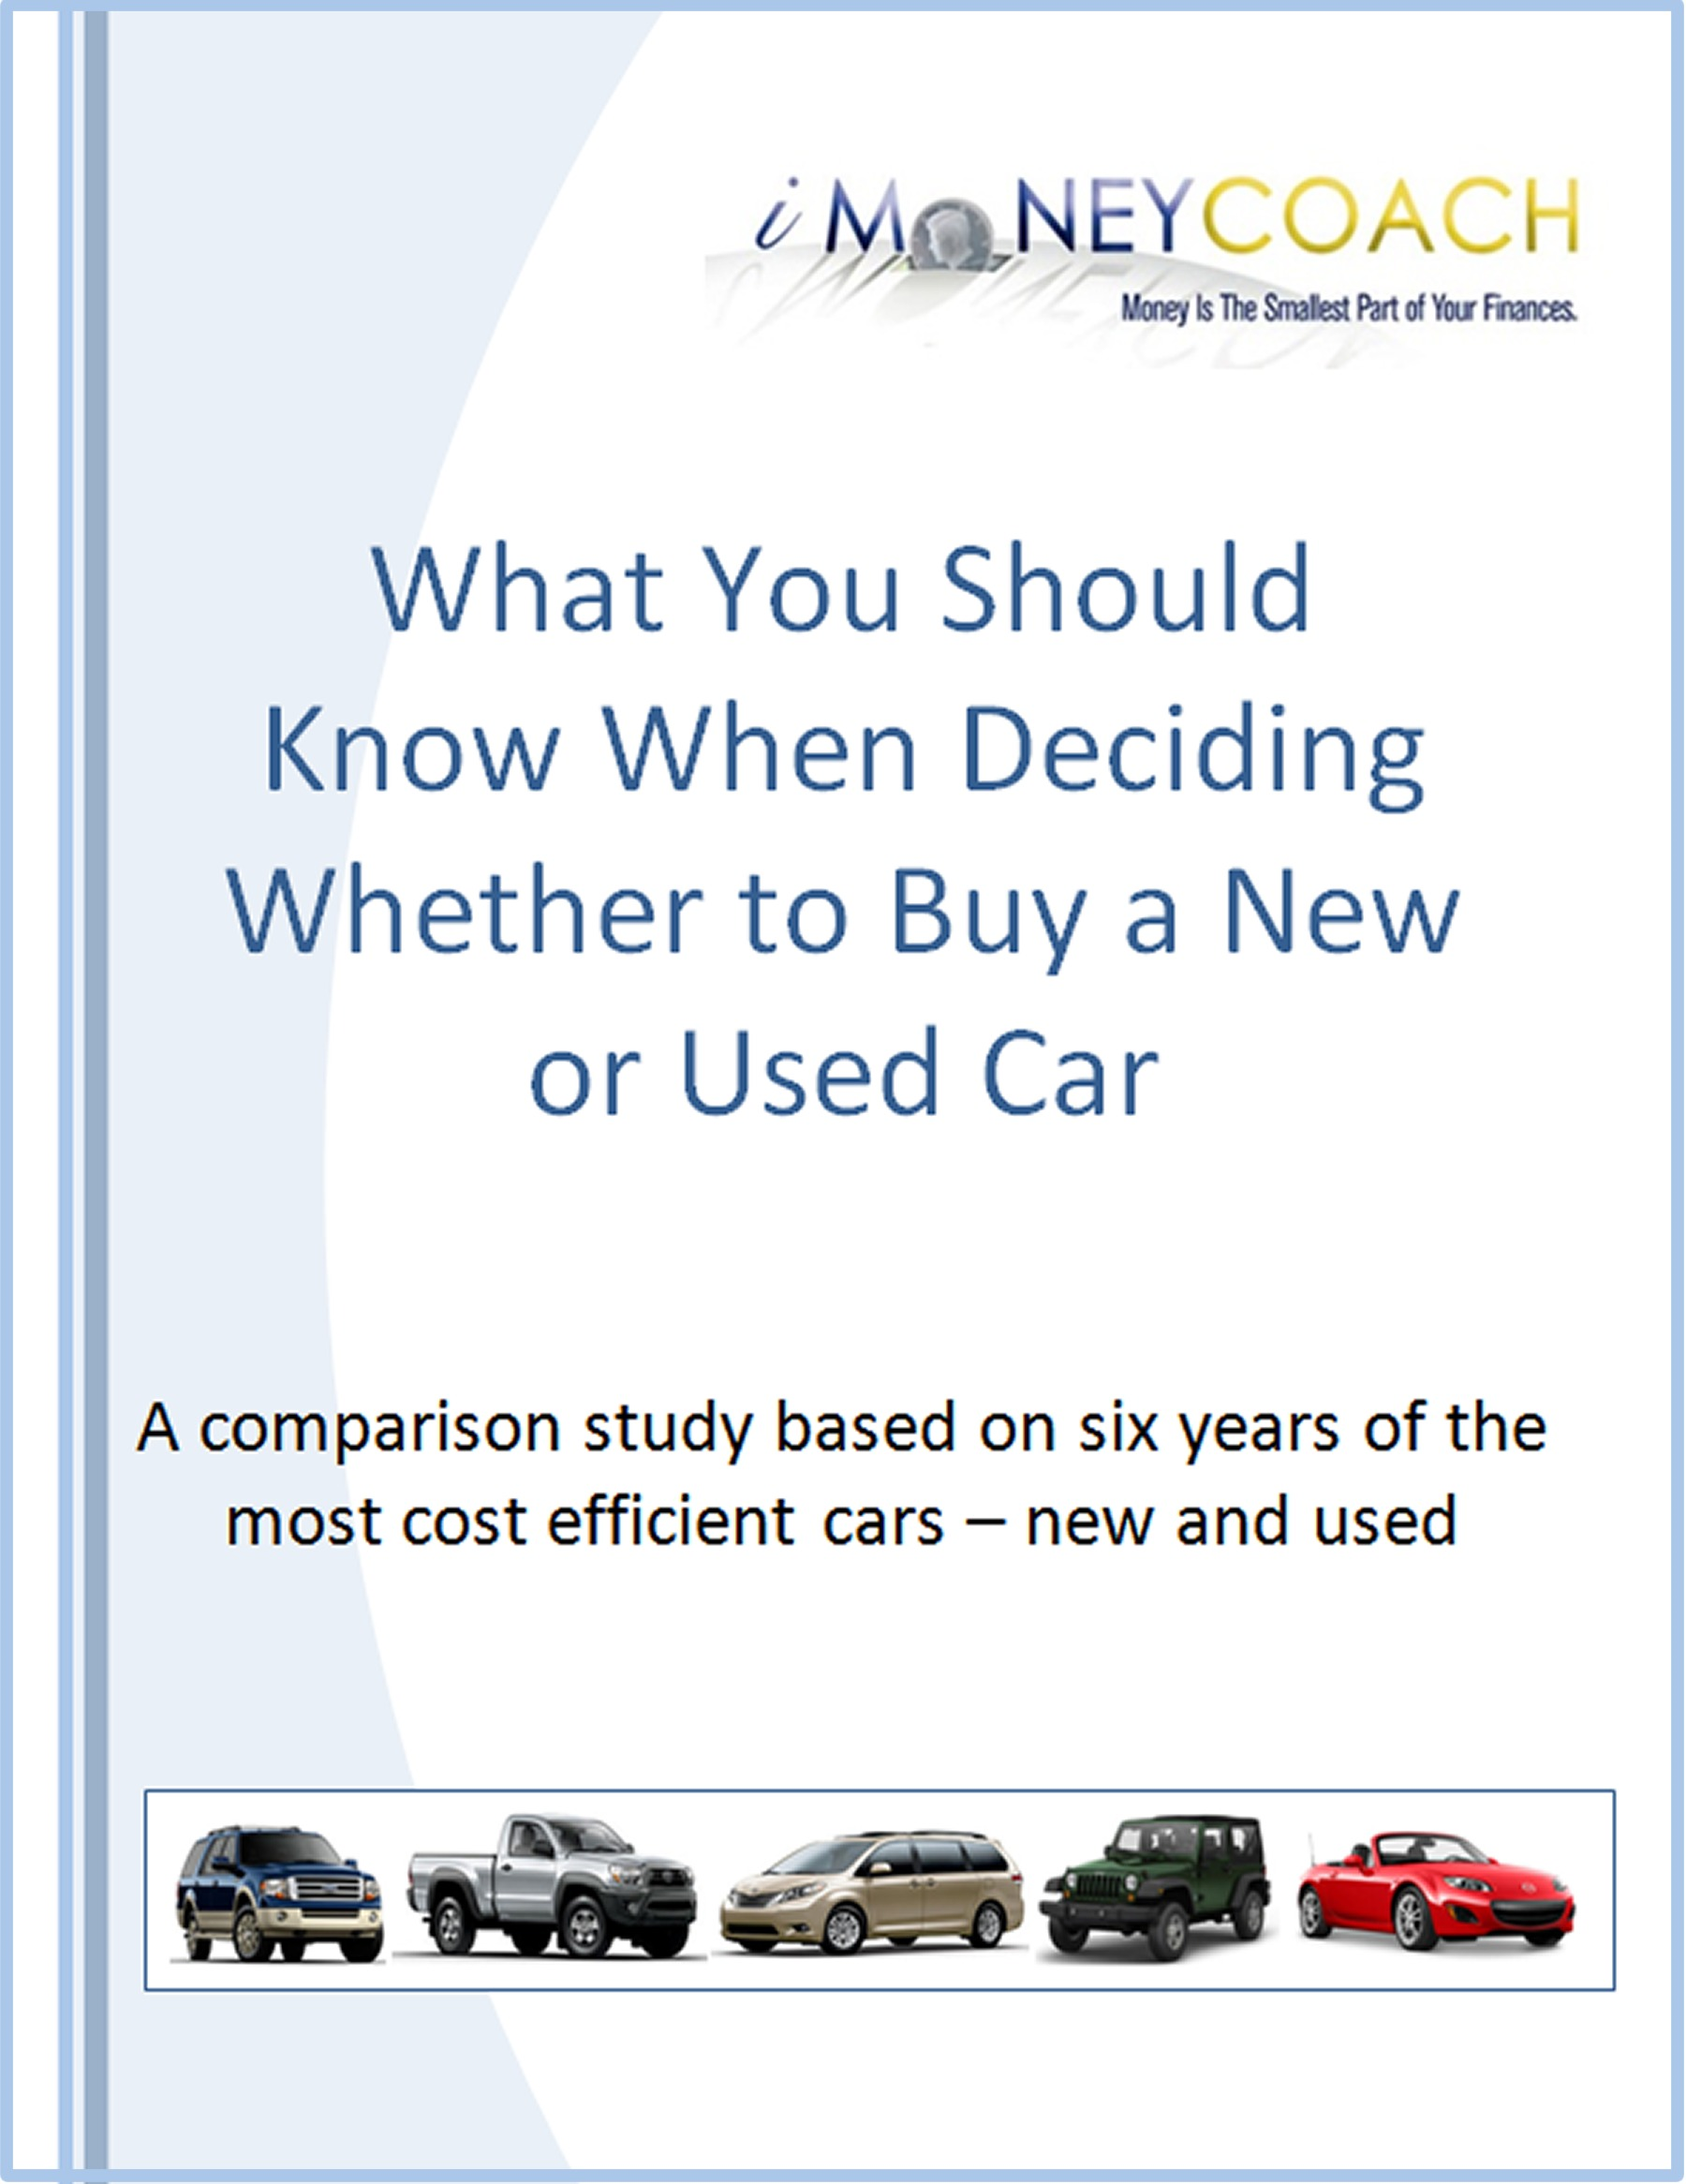 What You Should Know When Deciding Whether to Buy a New or Used Car